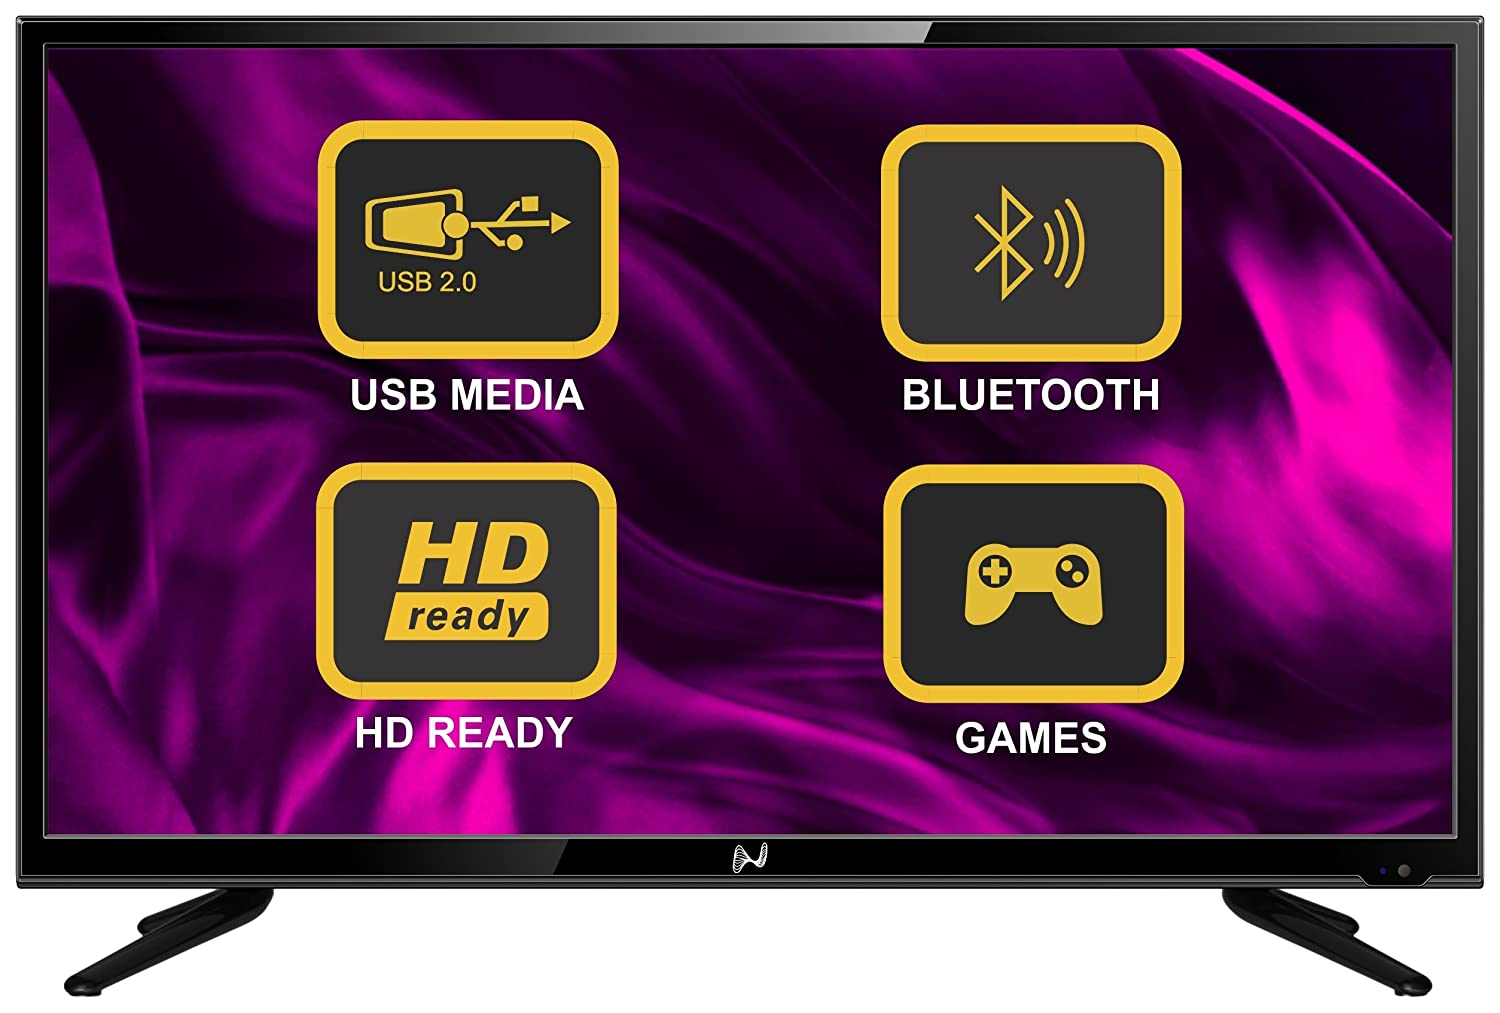 Noble SKIODO 32SM32N01 81cm (32 inches) HD Ready LED TV (Black)